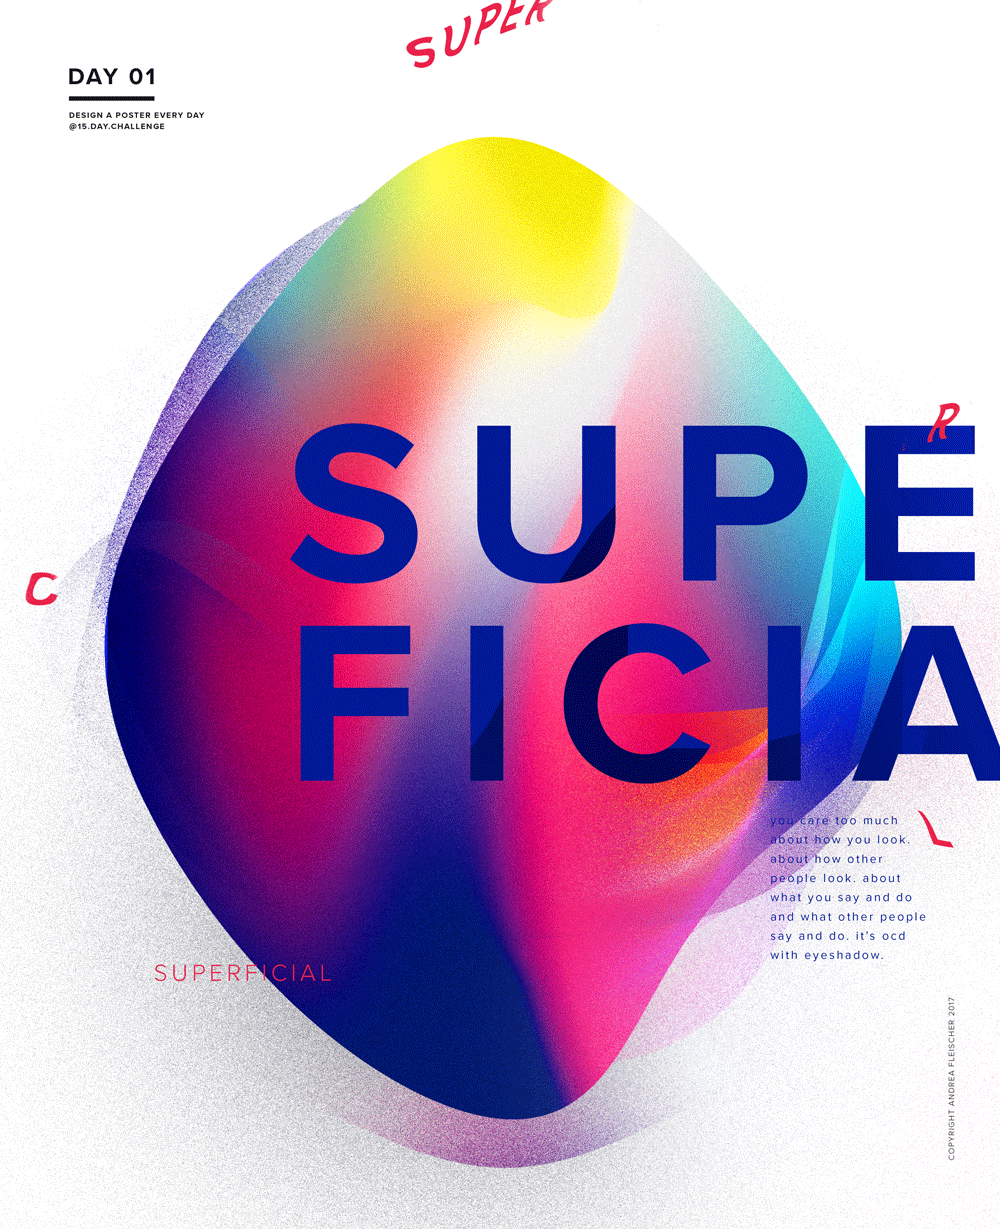 Superficial - image 1 - student project